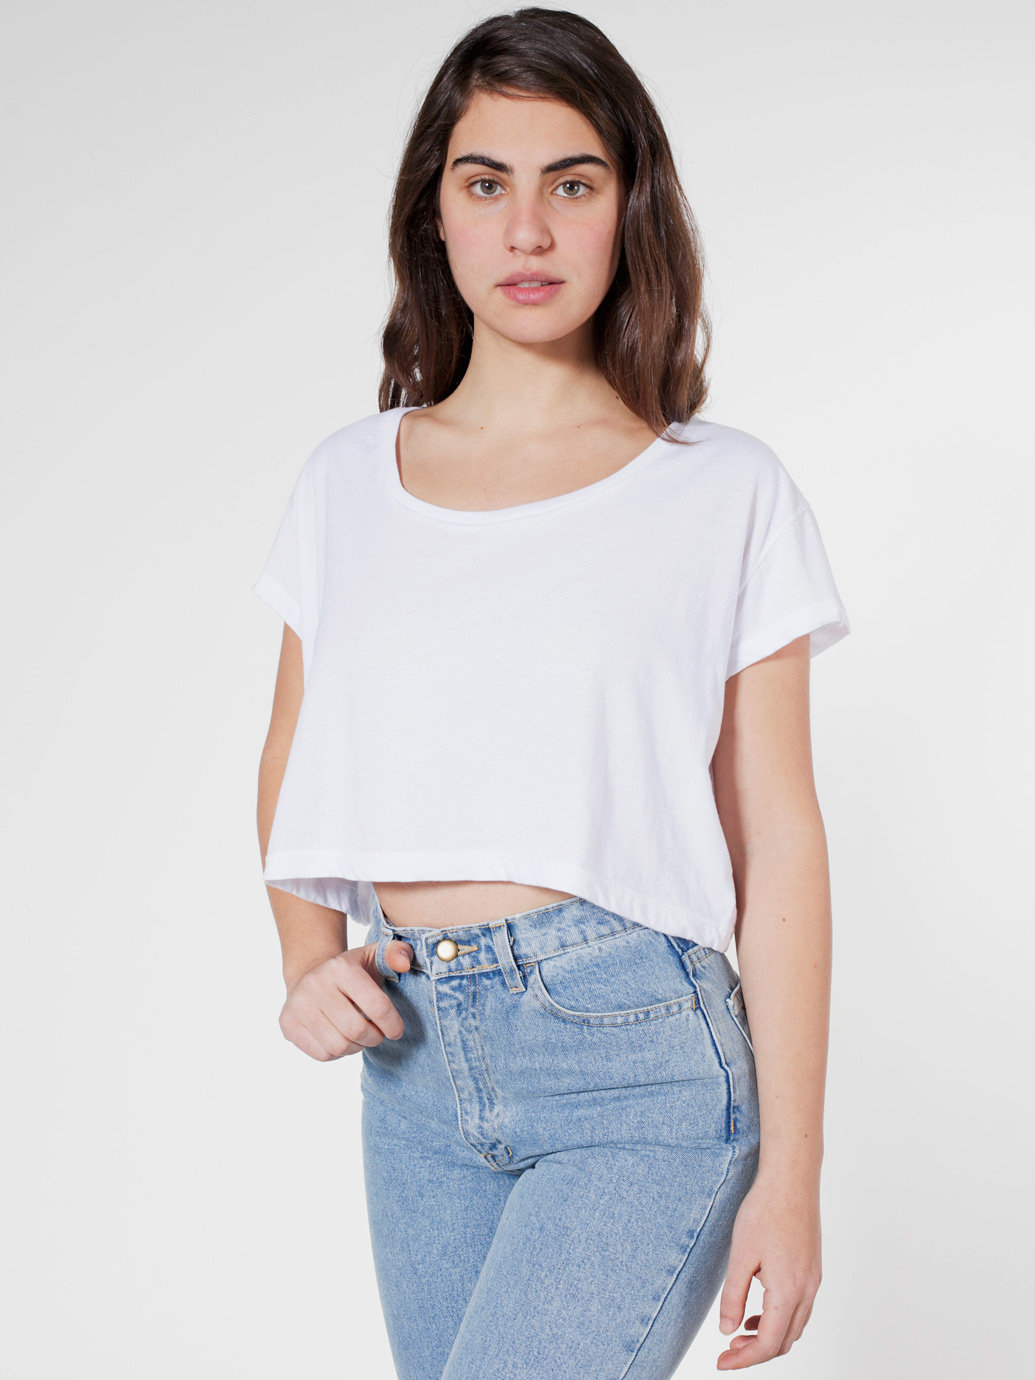 American Apparel Shoes On Sale